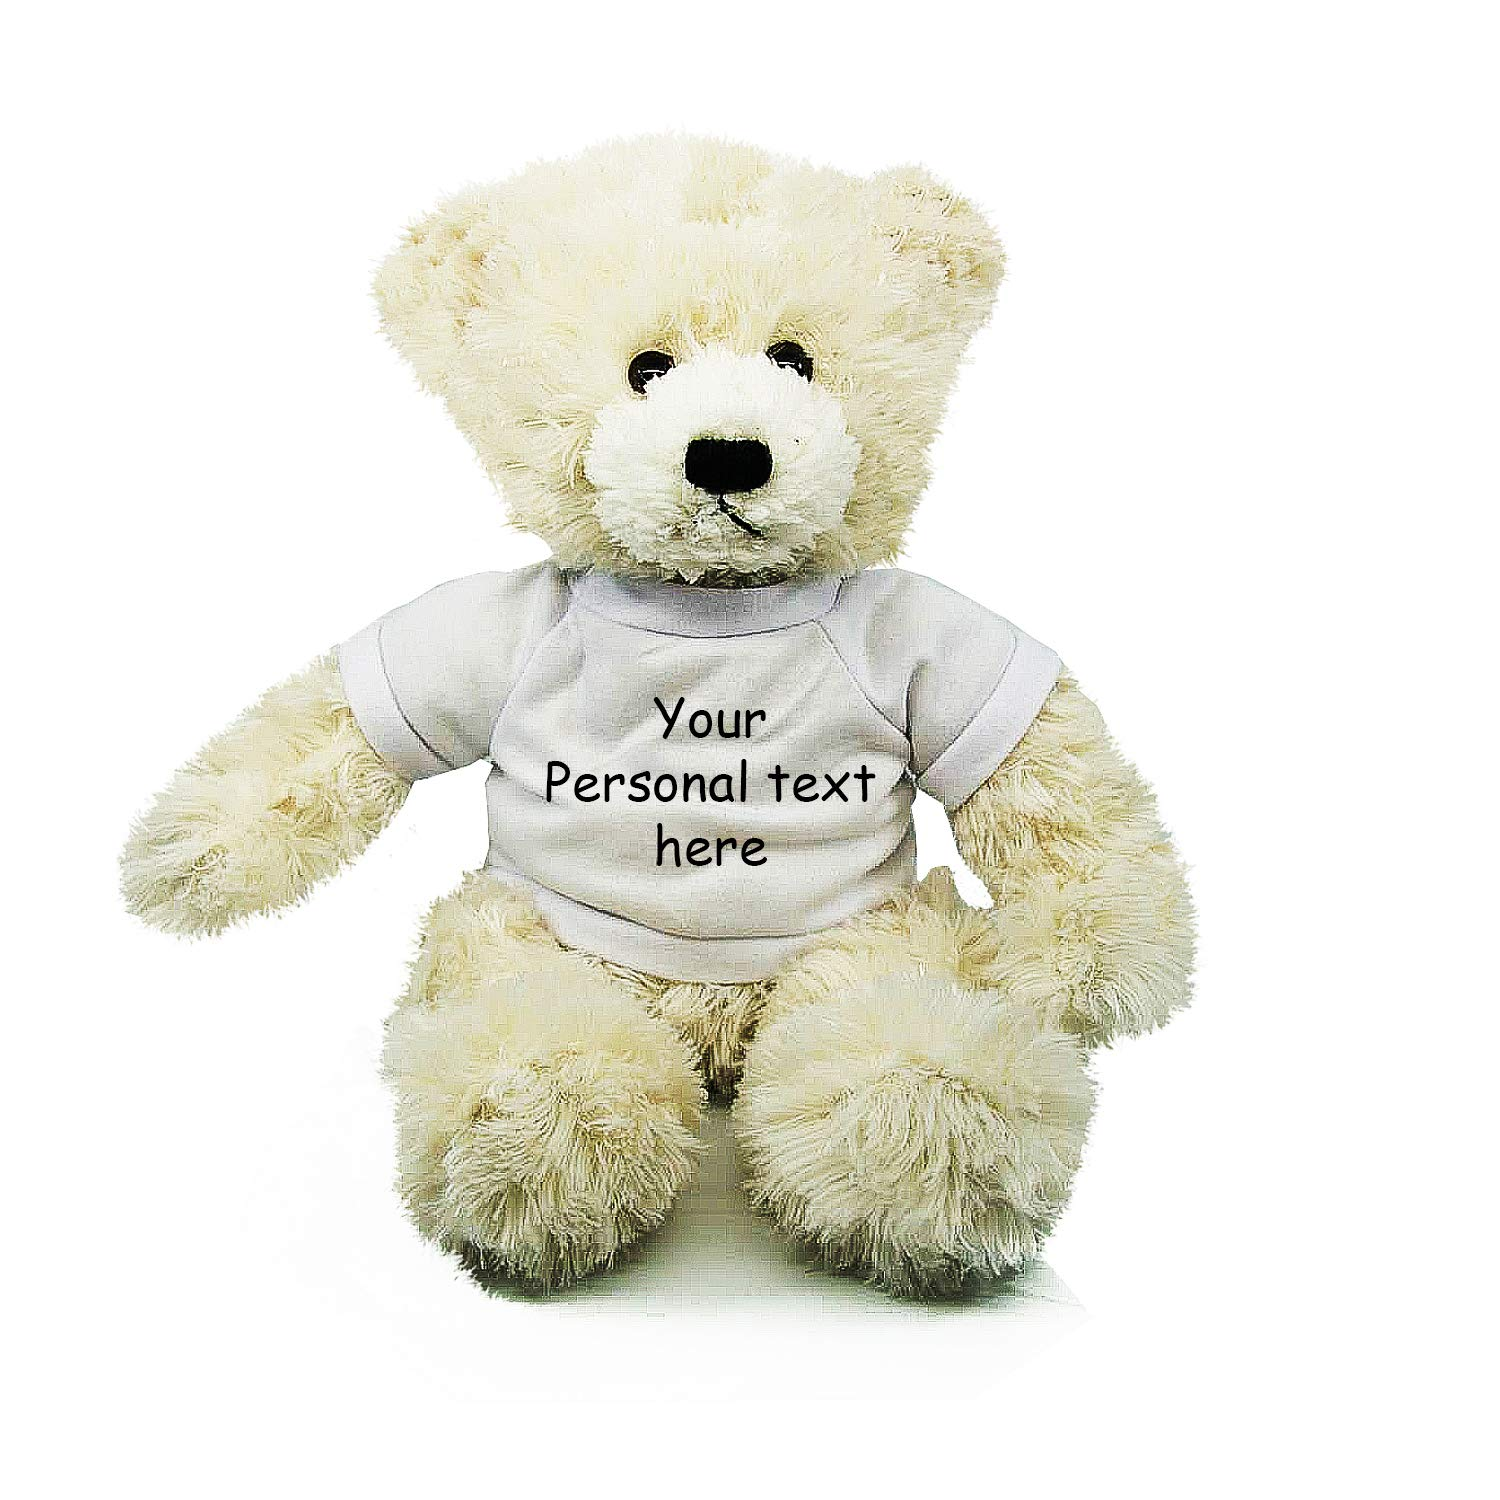 Plushland Cream Brandon Teddy Bear 12 Inch, Stuffed Animal Personalized Gift - Custom Text on Shirt - Great Present for Mothers Day, Valentine Day, Graduation Day, Birthday (White Shirt)